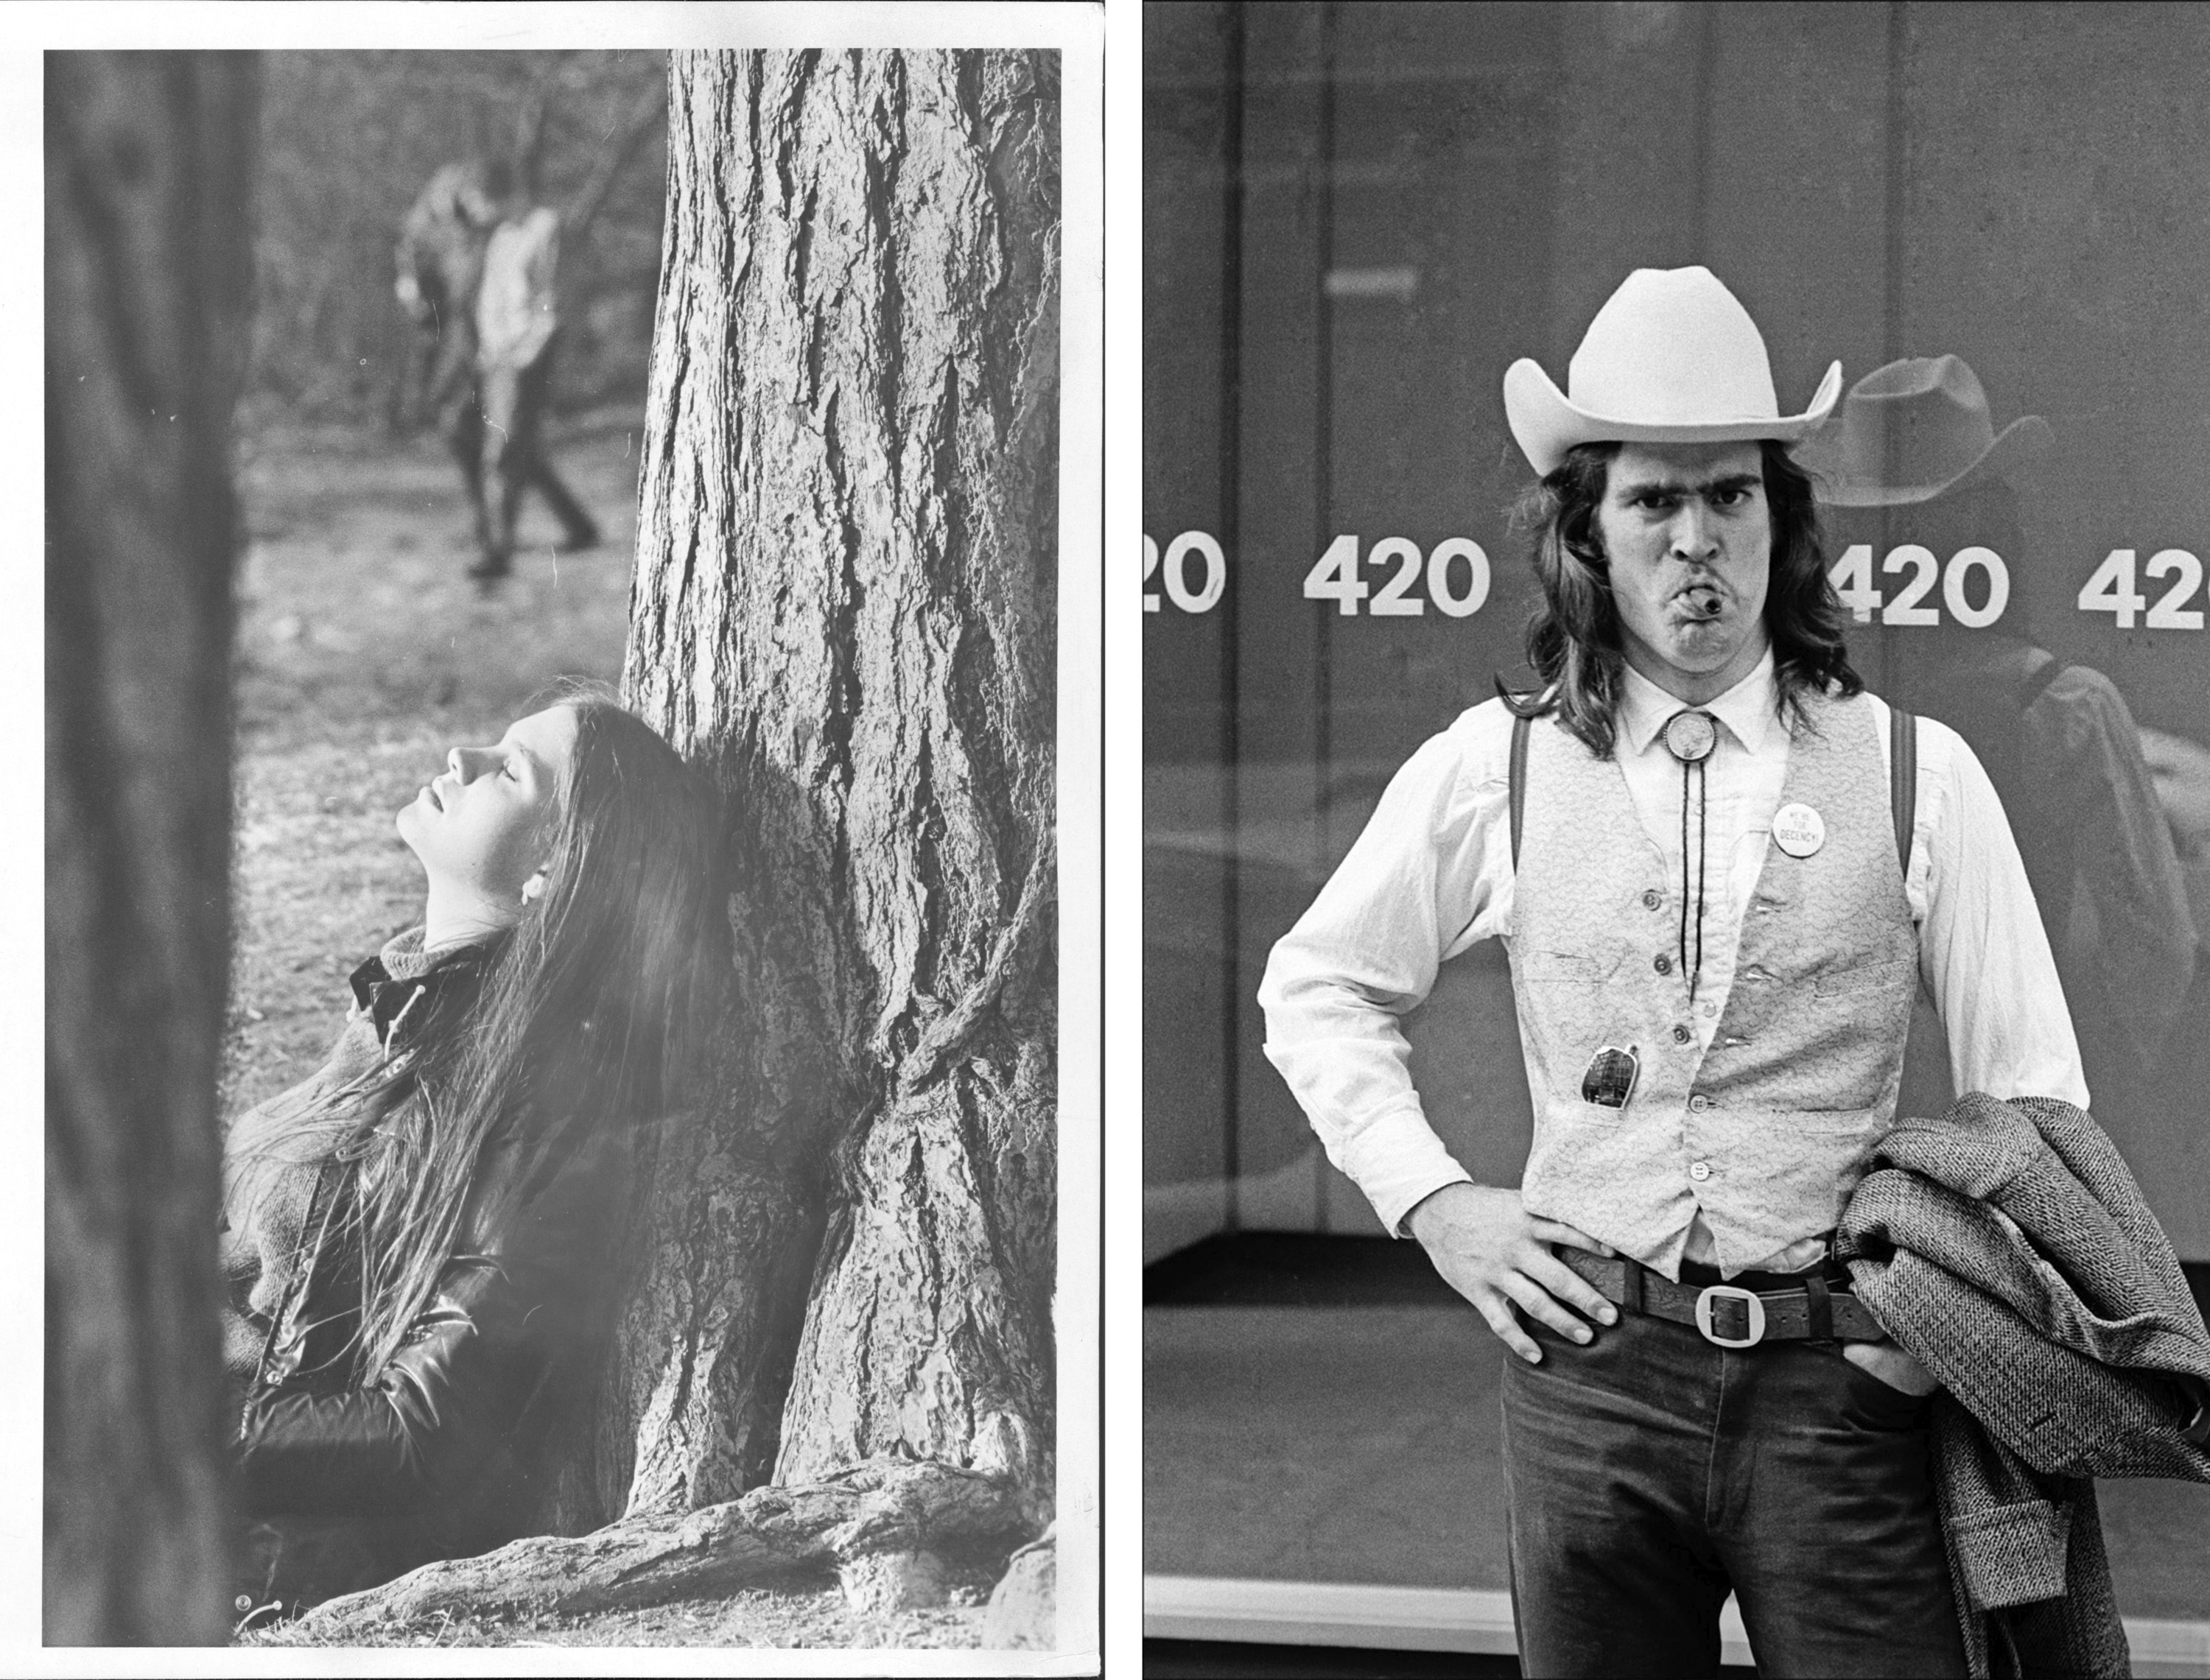 Two side-by-side images show a woman sunning herself leaning against a tree and a man in a cowboy hat in front of a building